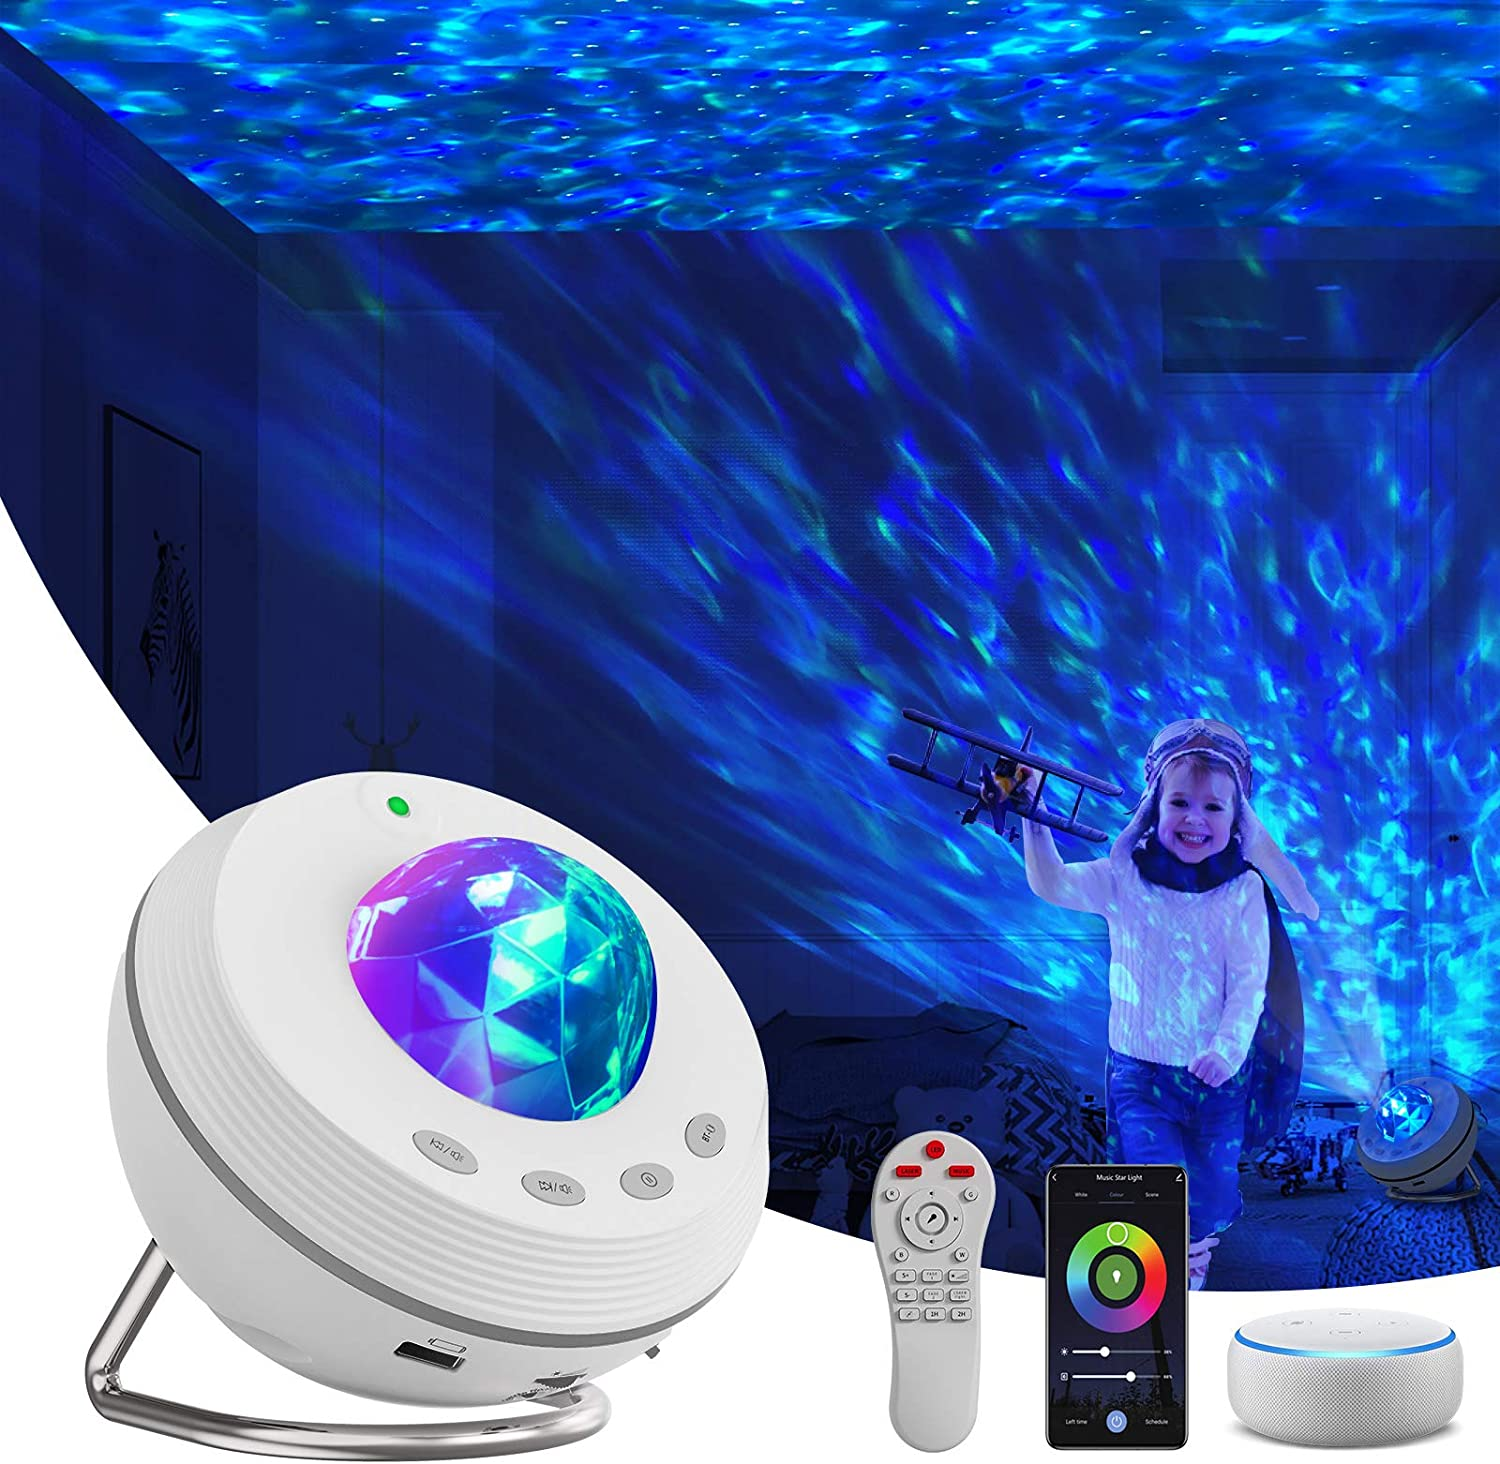 Star Projector, Night Light Projector 4 in 1 Galaxy Projector 85° Rotating,with Bluetooth Music Speaker Phone App Remote Control for Baby Kids Bedroom/Game Rooms/Home Theatre/Birthday/Party/Wedding